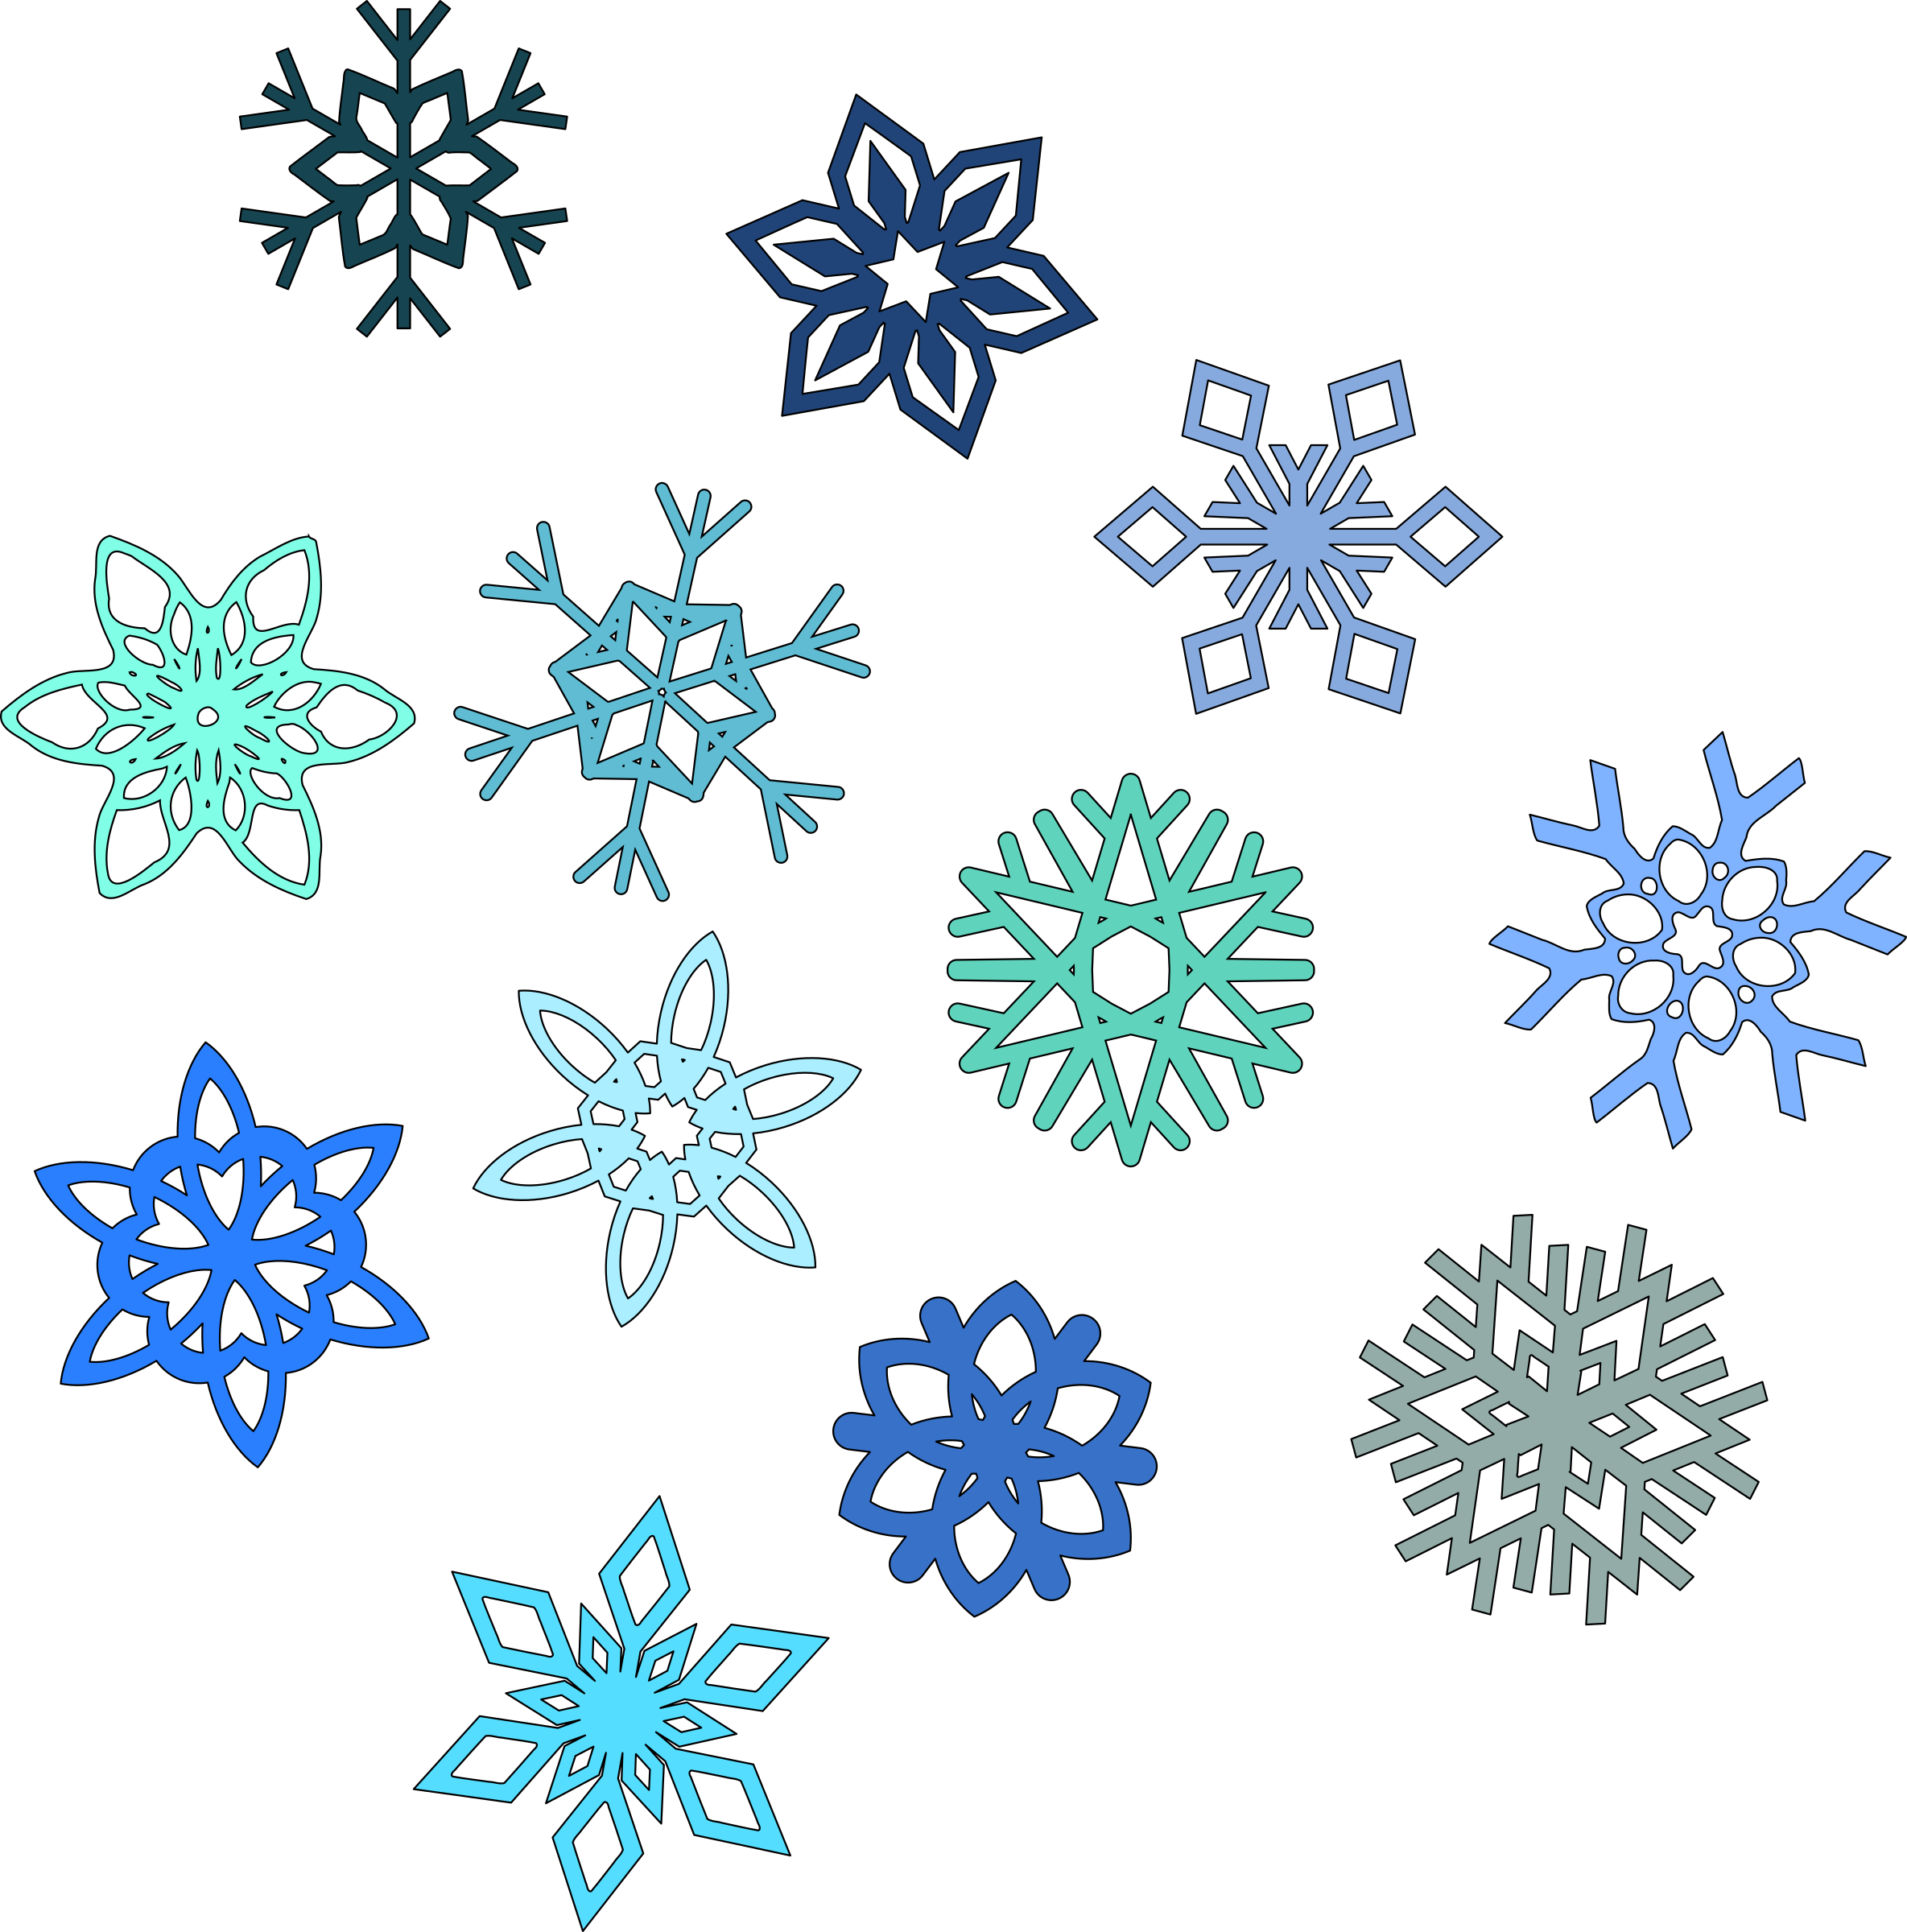 Falling snowflake clipart blue clip art free download Keeping a Snow Journal | Pinterest | Scrapbooking clip art free download